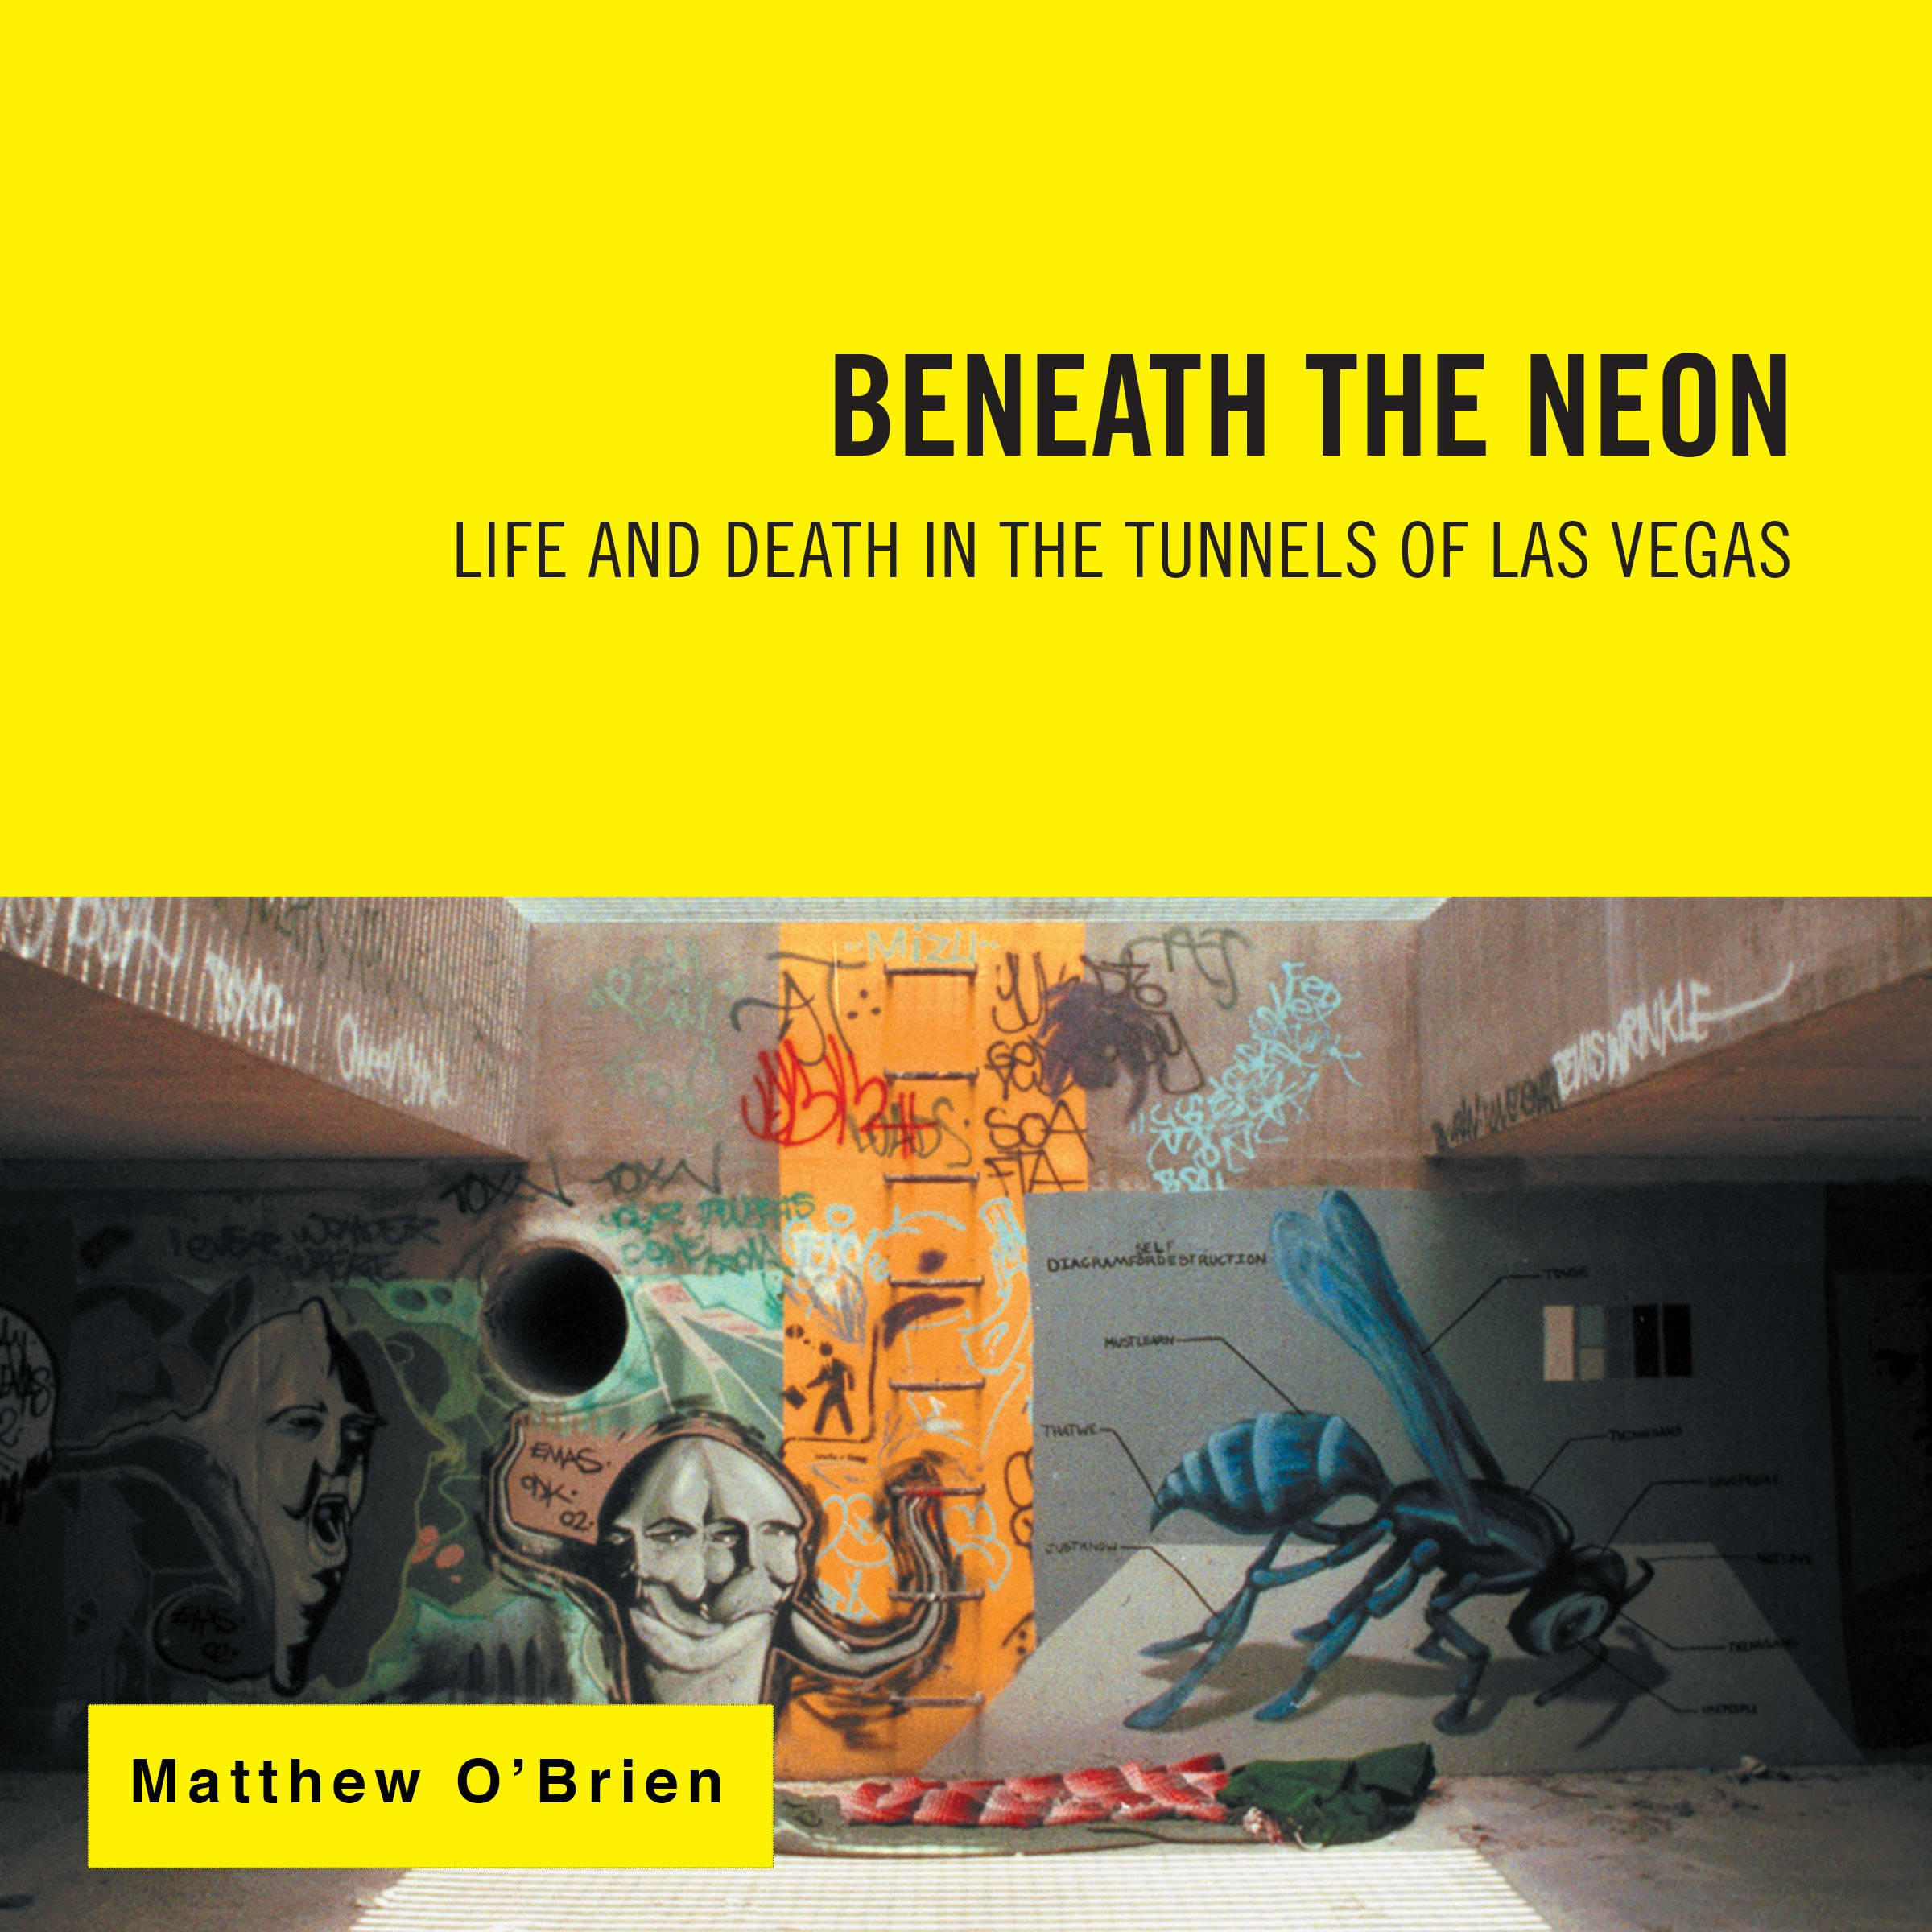 Beneath the Neon: Life and Death in the Tunnels of Las Vegas